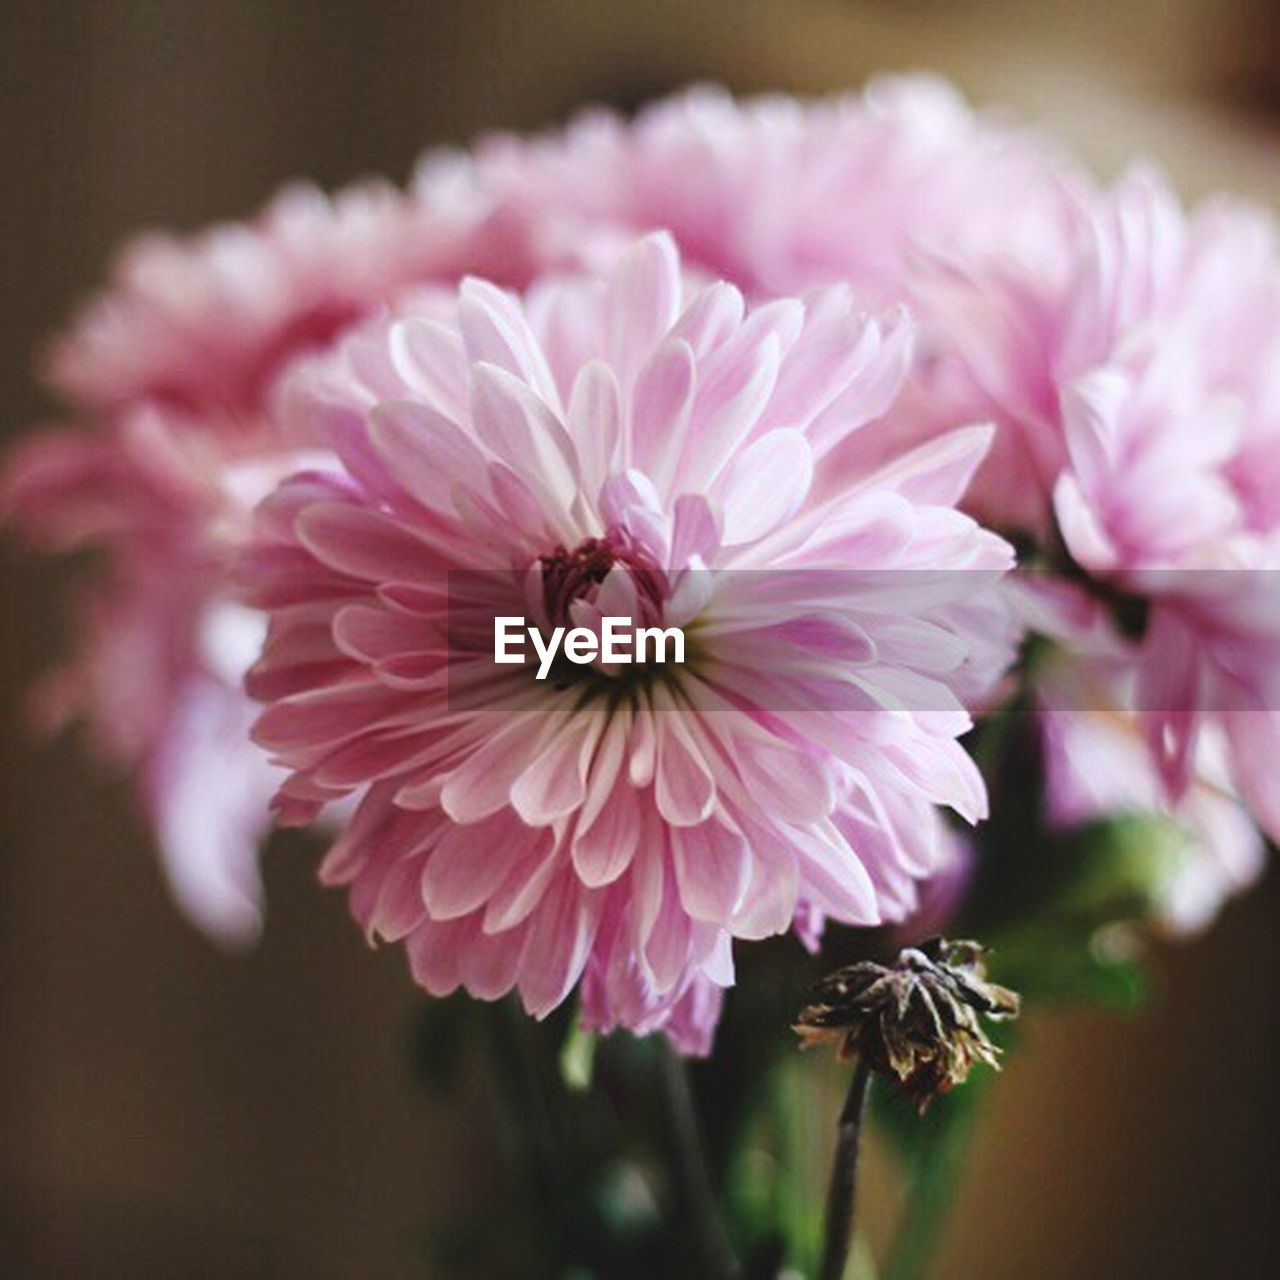 flower, flowering plant, plant, pink color, freshness, beauty in nature, fragility, close-up, vulnerability, petal, flower head, inflorescence, no people, nature, focus on foreground, growth, peony, outdoors, day, dahlia